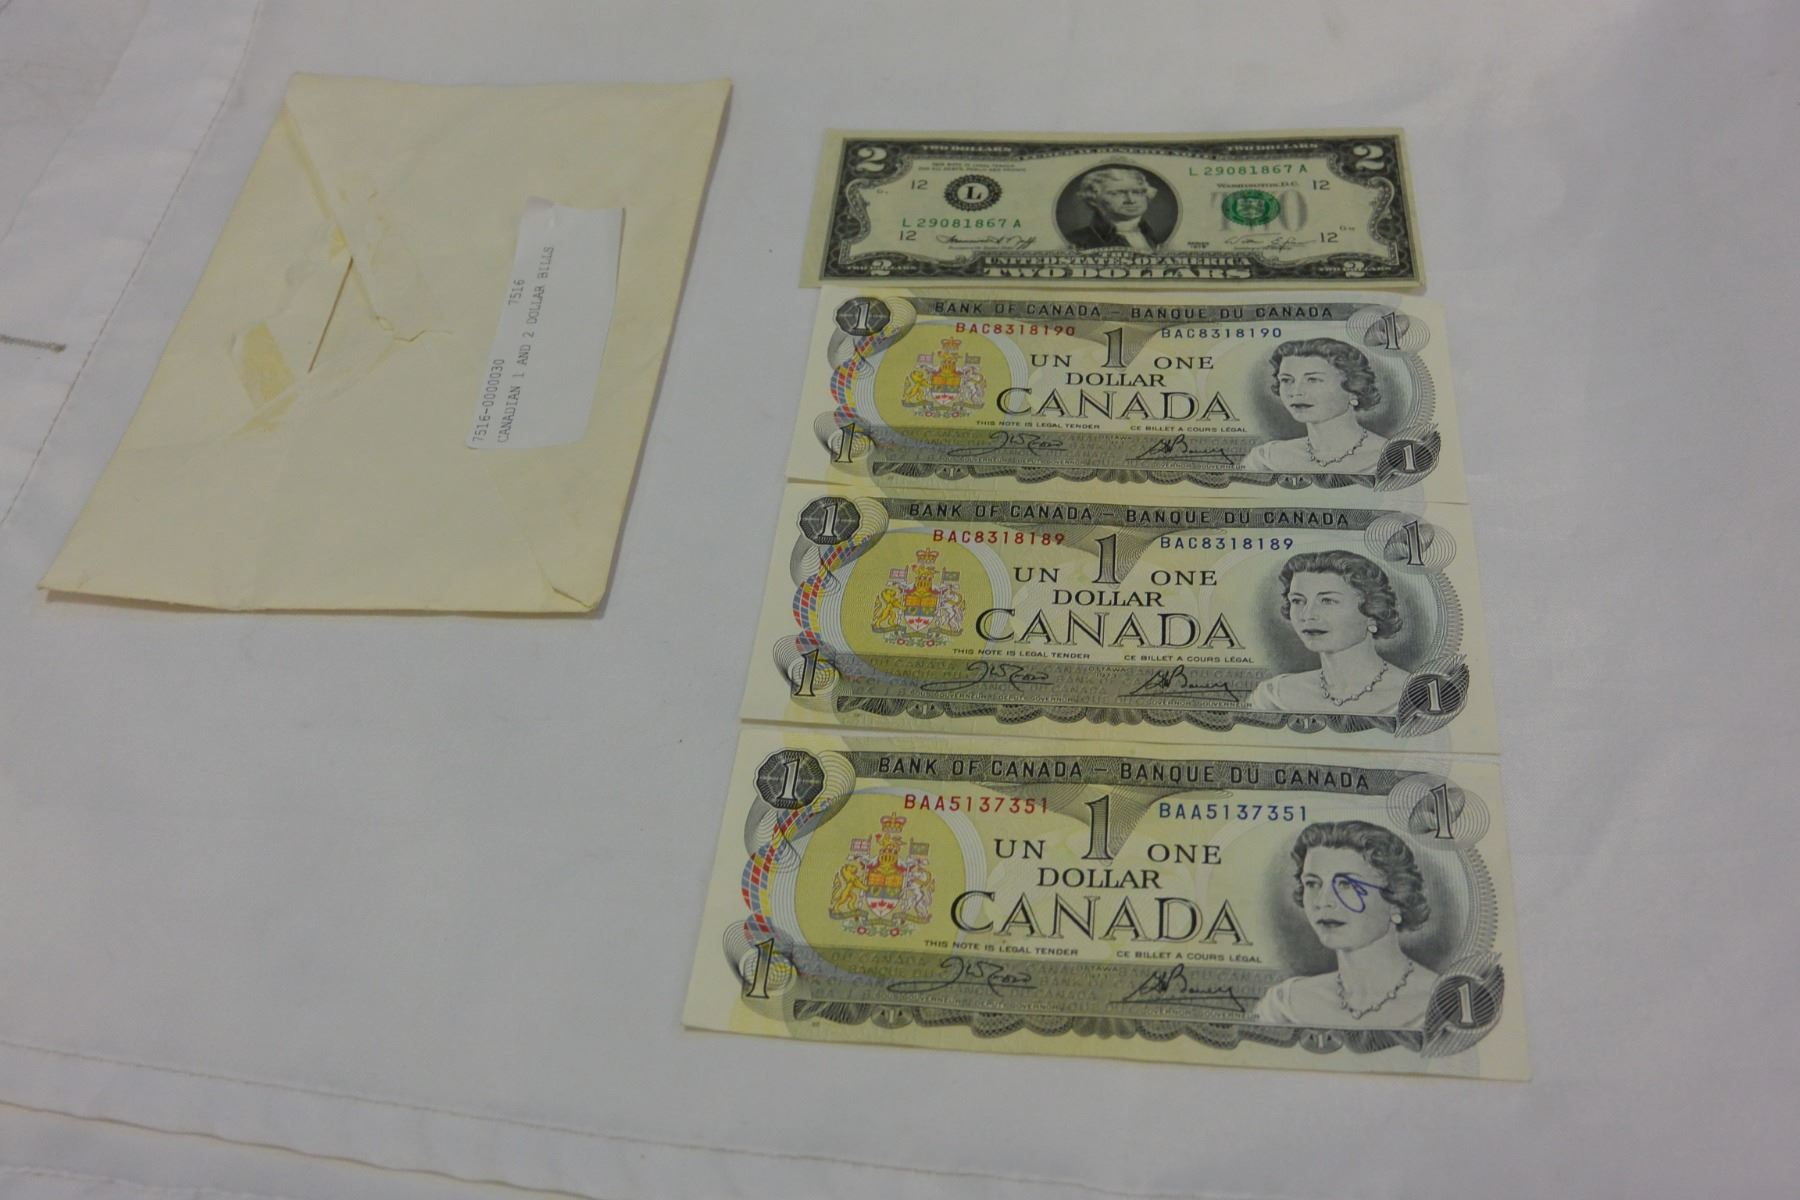 Image 1 Canadian Dollar Bills And Usa 2 Bill